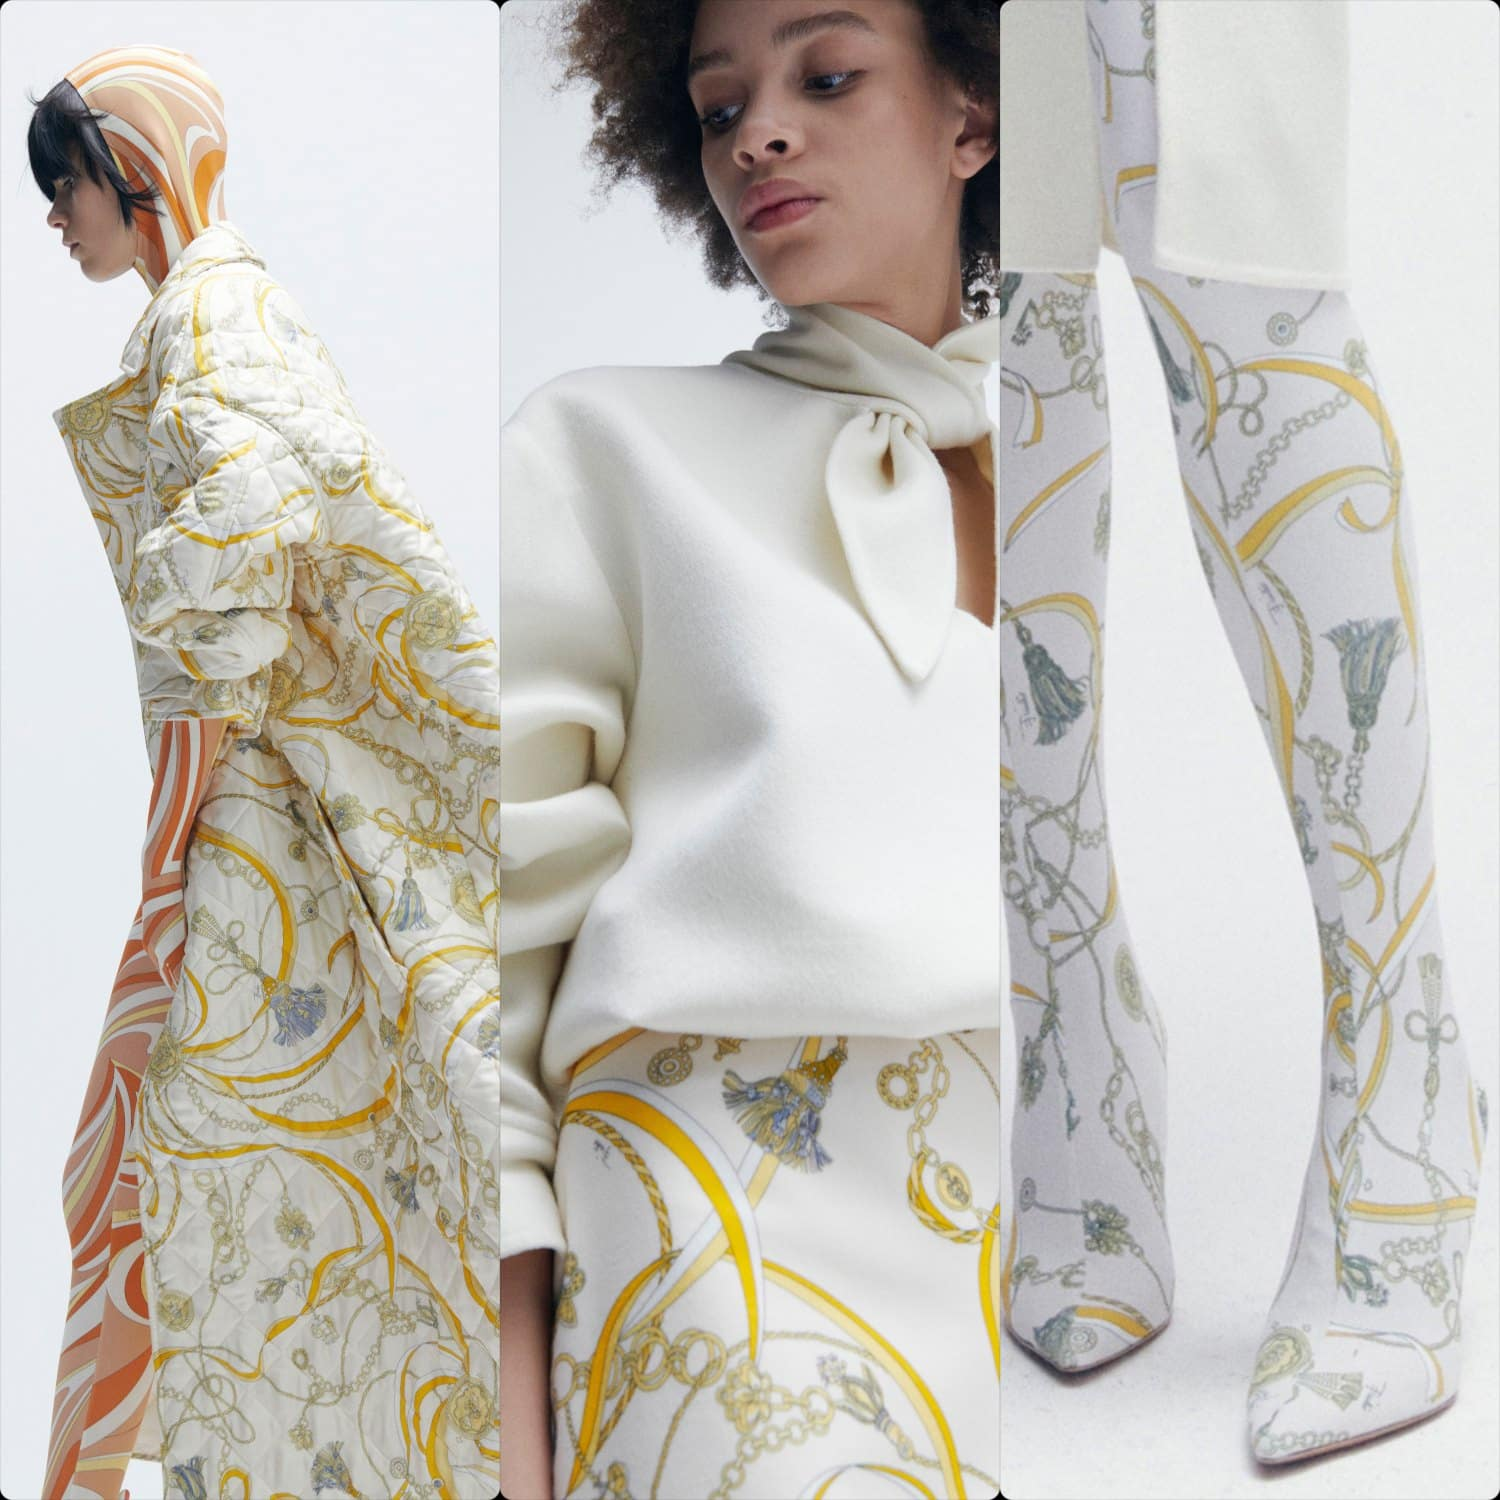 Emilio Pucci Fall Winter 2021-2022 Milan. RUNWAY MAGAZINE ® Collections. RUNWAY NOW / RUNWAY NEW